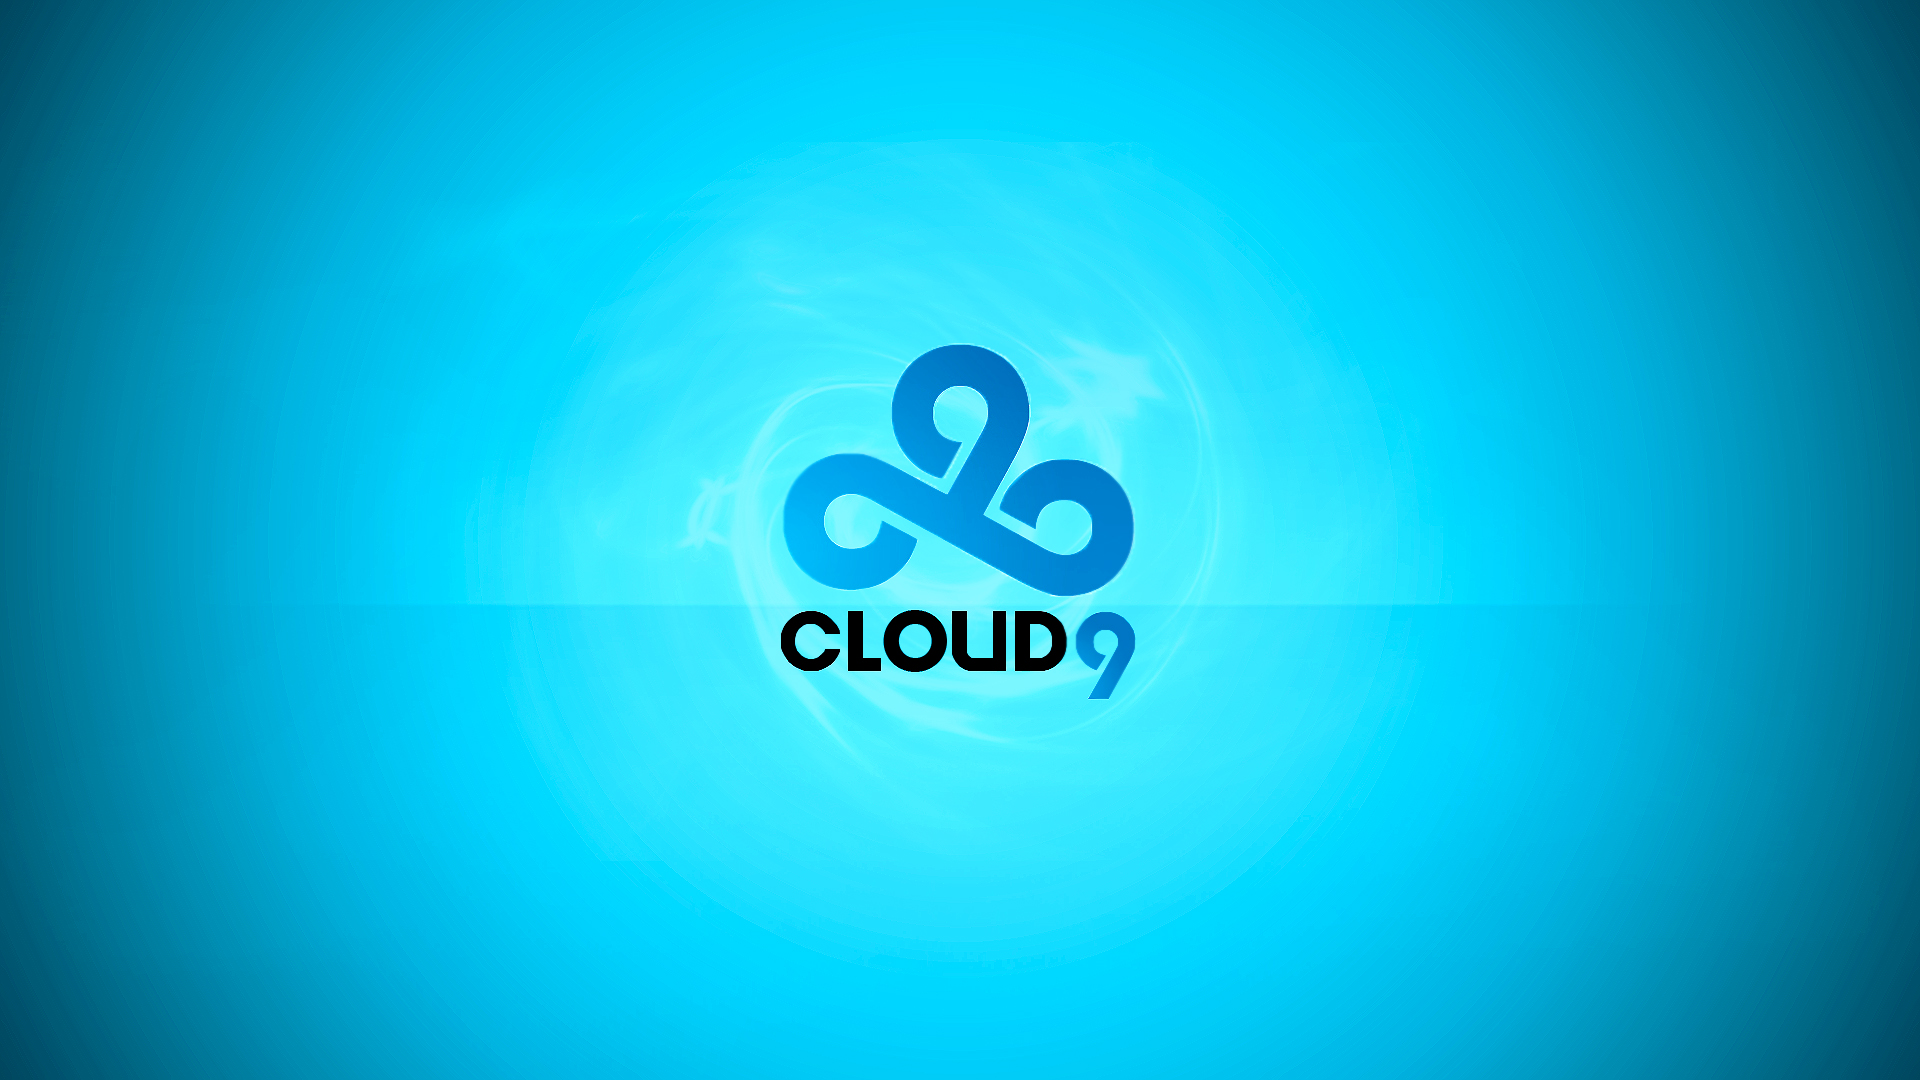 50+] Cloud 9 Wallpaper Reddit on WallpaperSafari